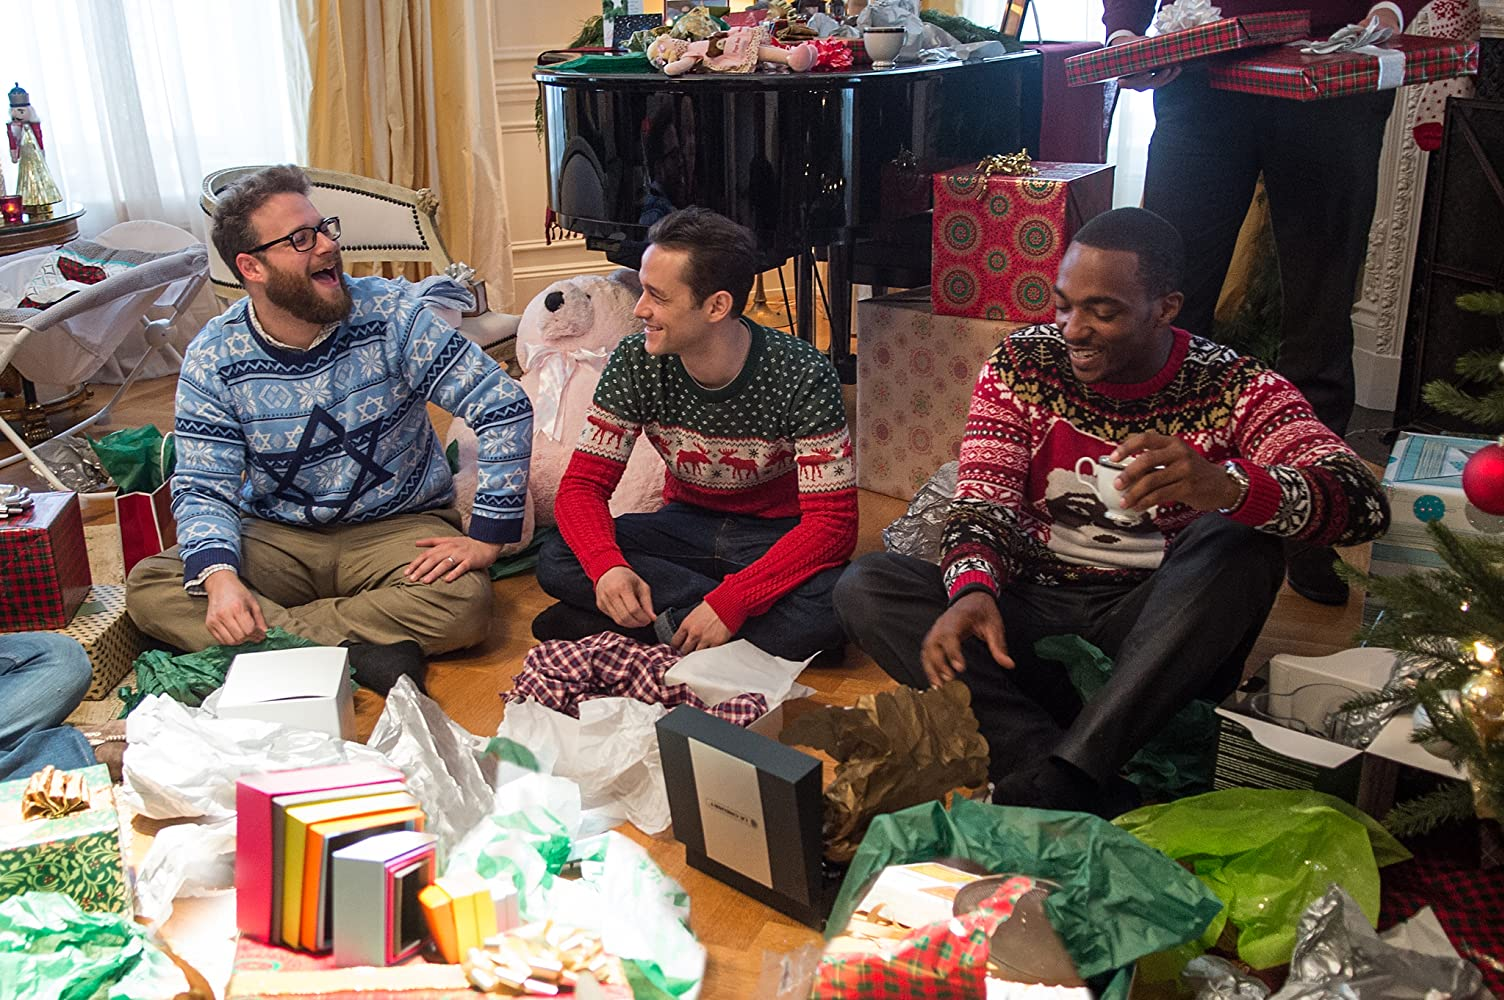 Joseph Gordon-Levitt, Seth Rogen, and Anthony Mackie in The Night Before (2015)